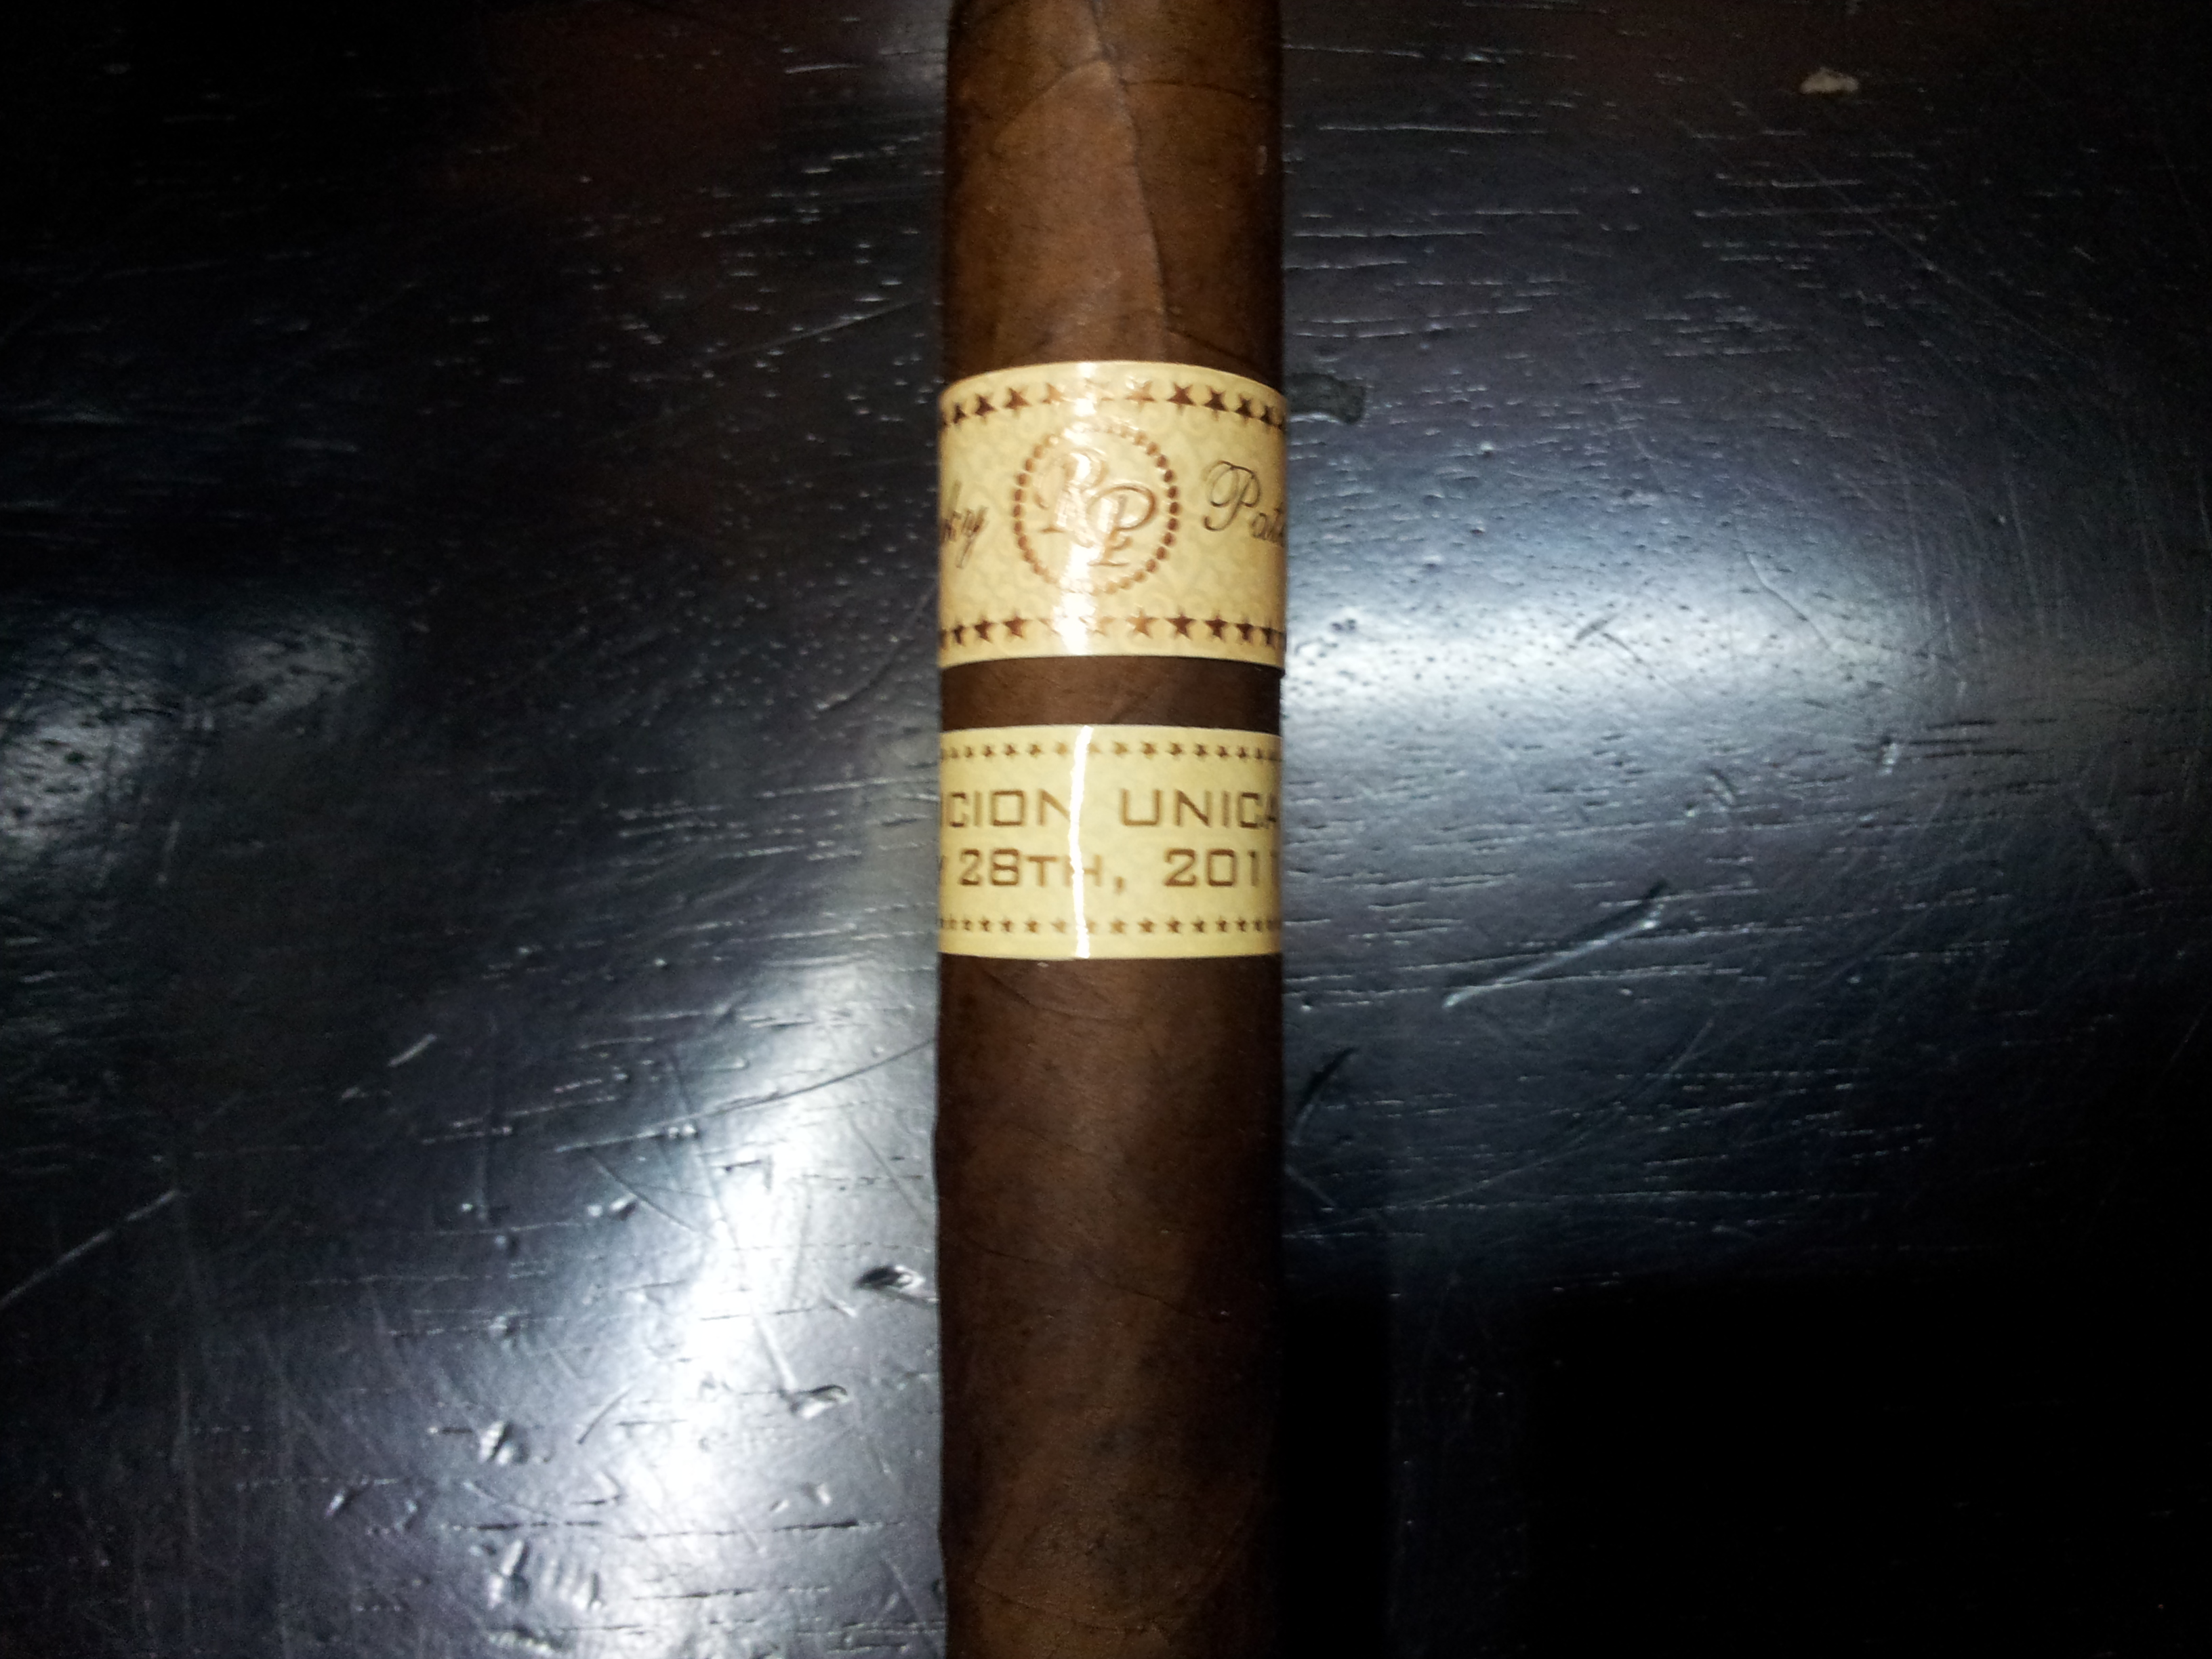 Rocky Patel Edicion Unica May 28th, 2011 – Cigar Review